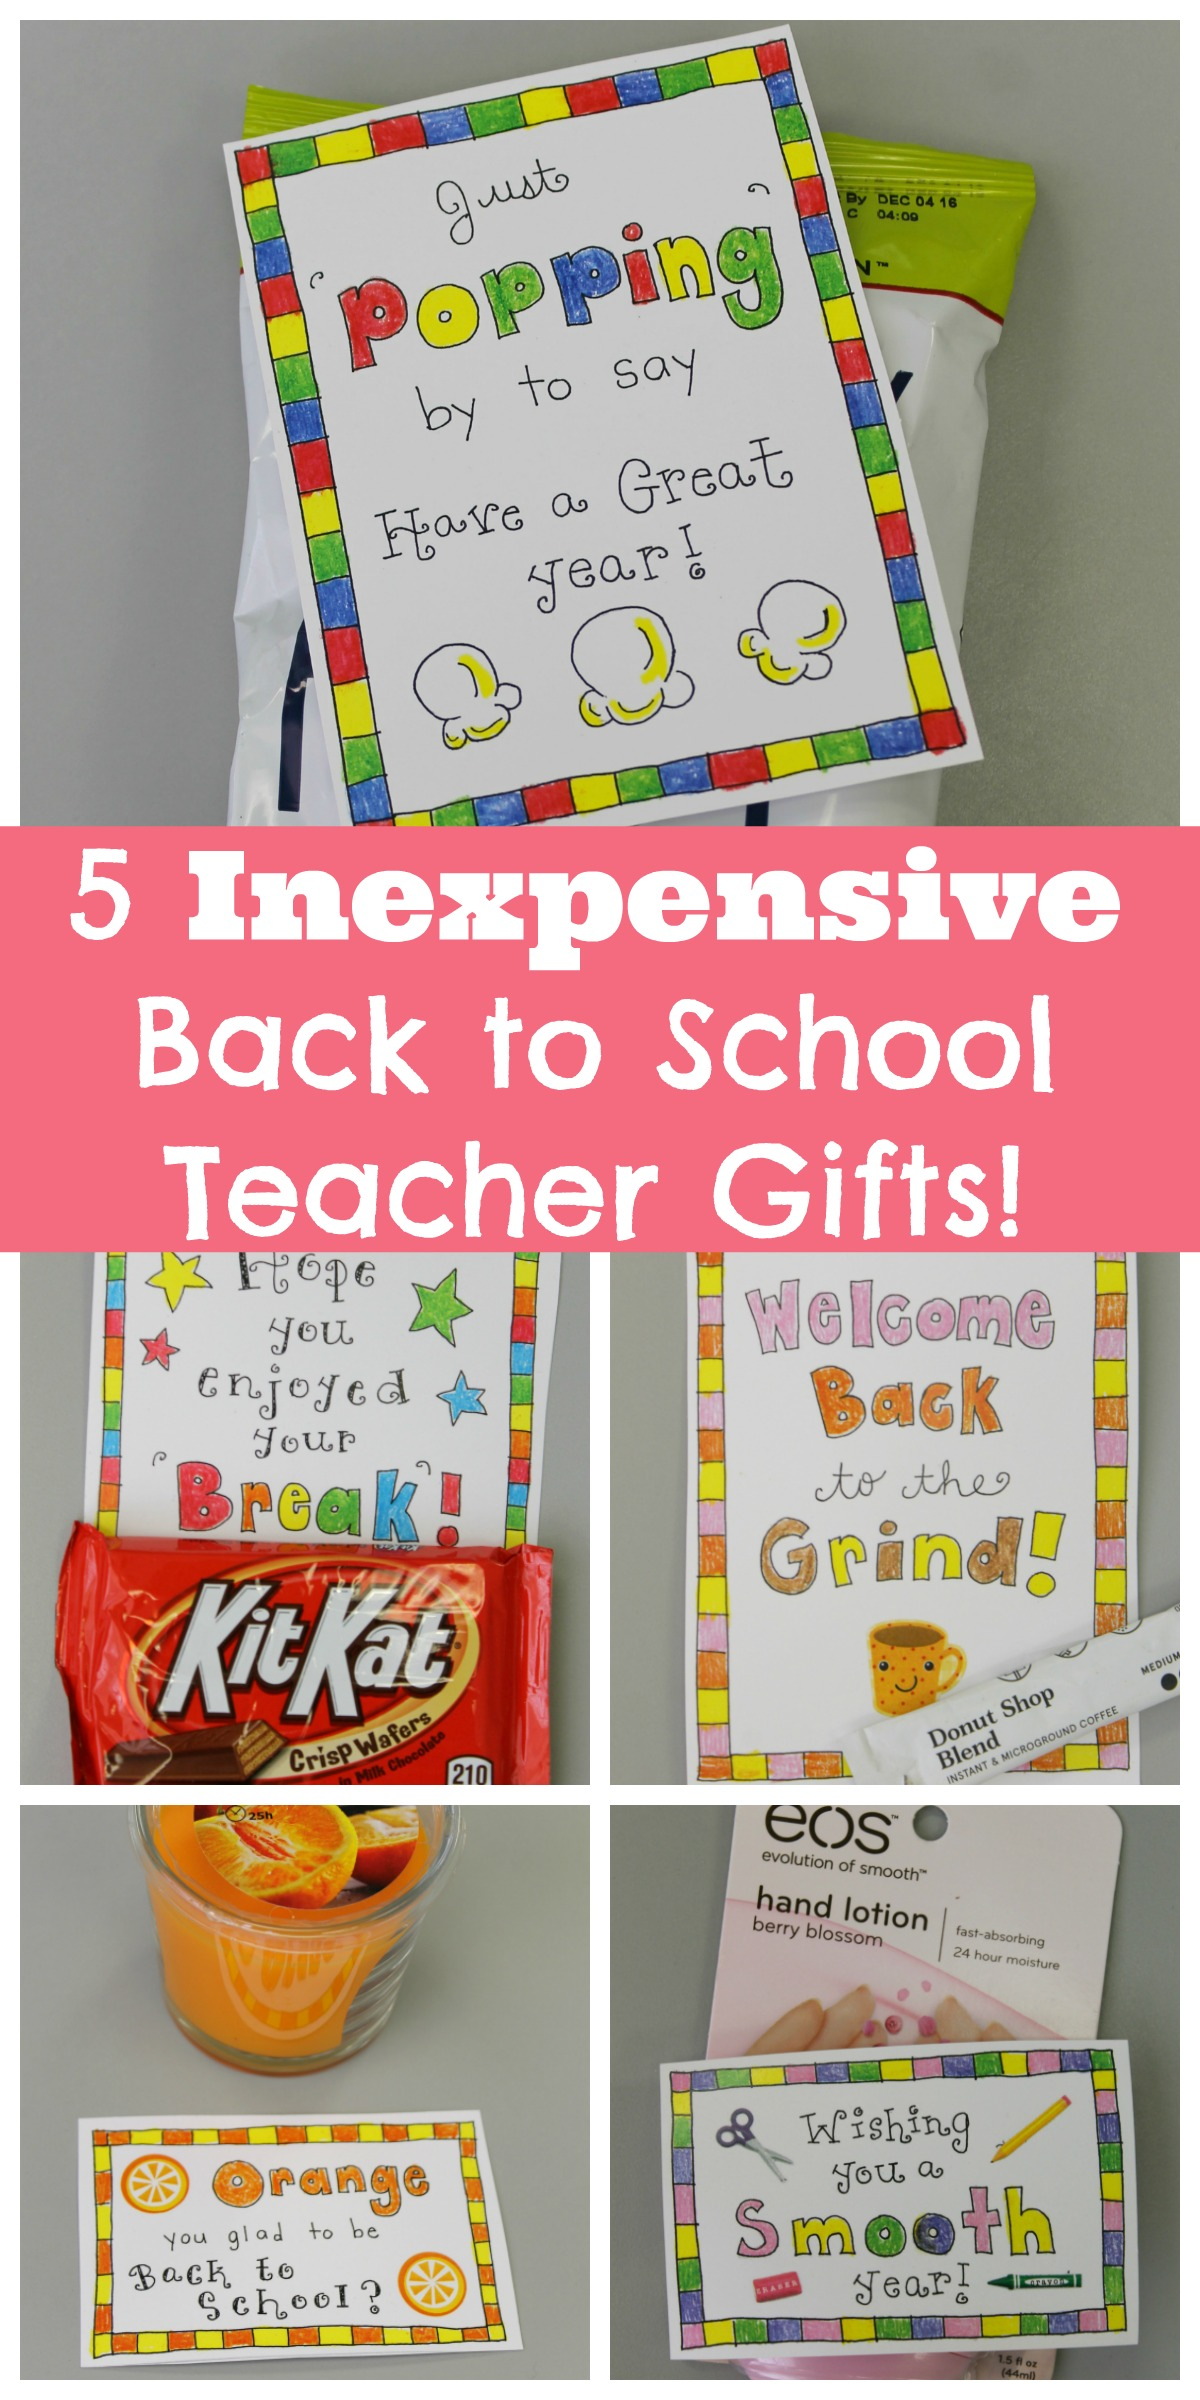 5 Inexpensive Back To School Ts For Teachers